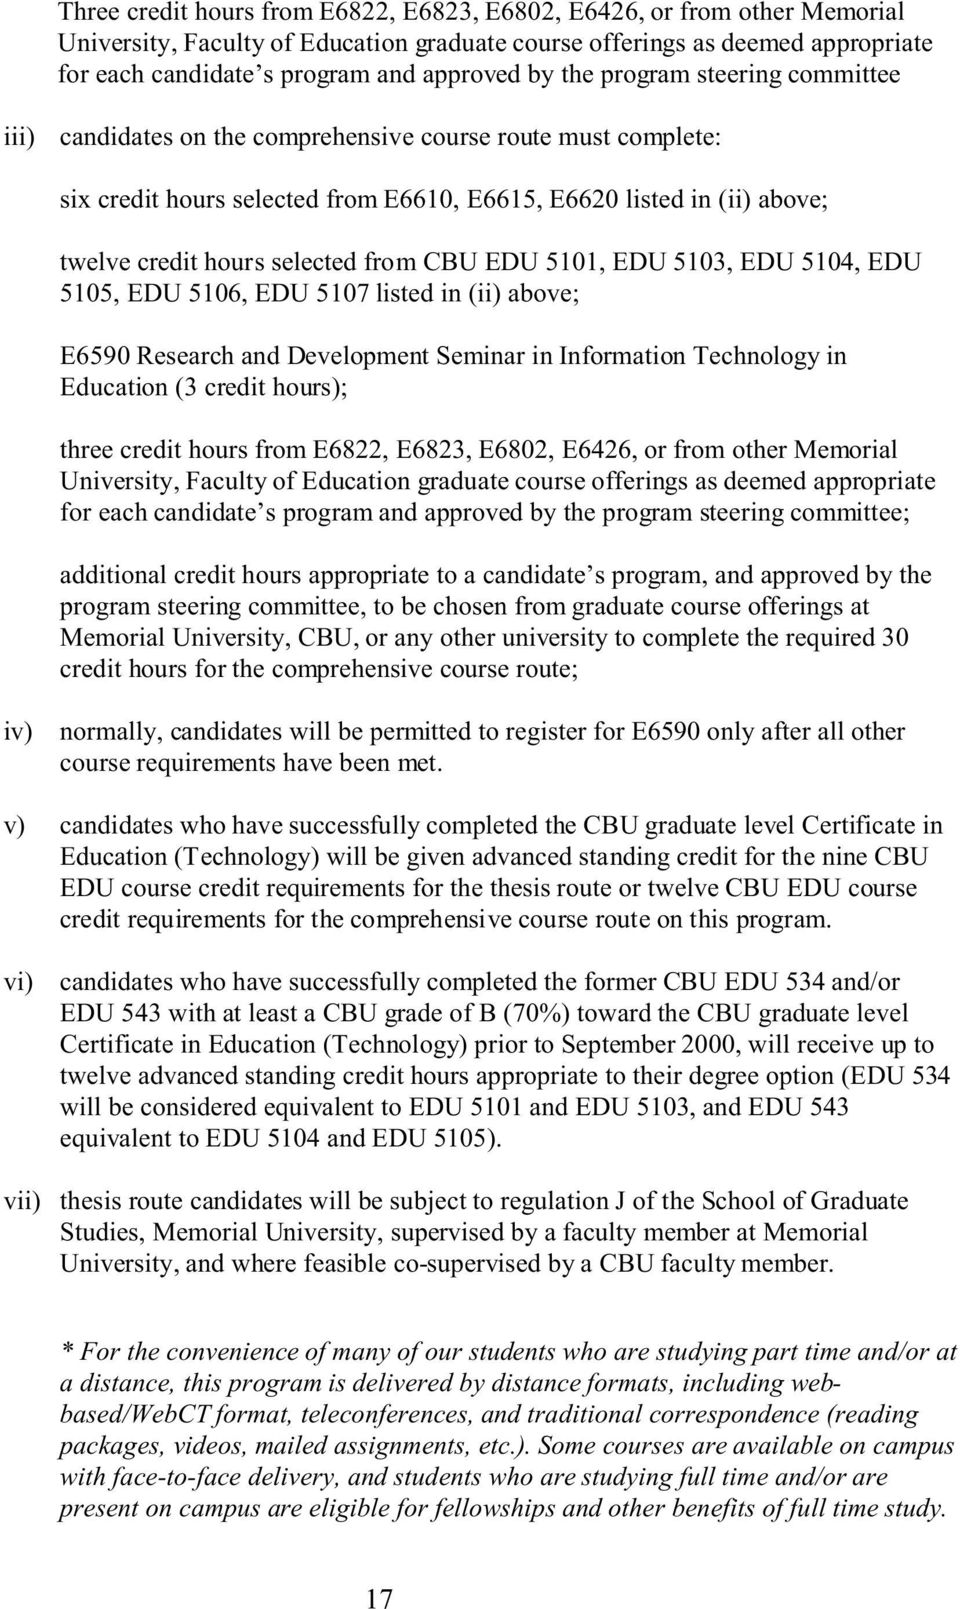 selected from CBU EDU 5101, EDU 5103, EDU 5104, EDU 5105, EDU 5106, EDU 5107 listed in (ii) above; E6590 Research and Development Seminar in Information Technology in Education (3 credit hours);